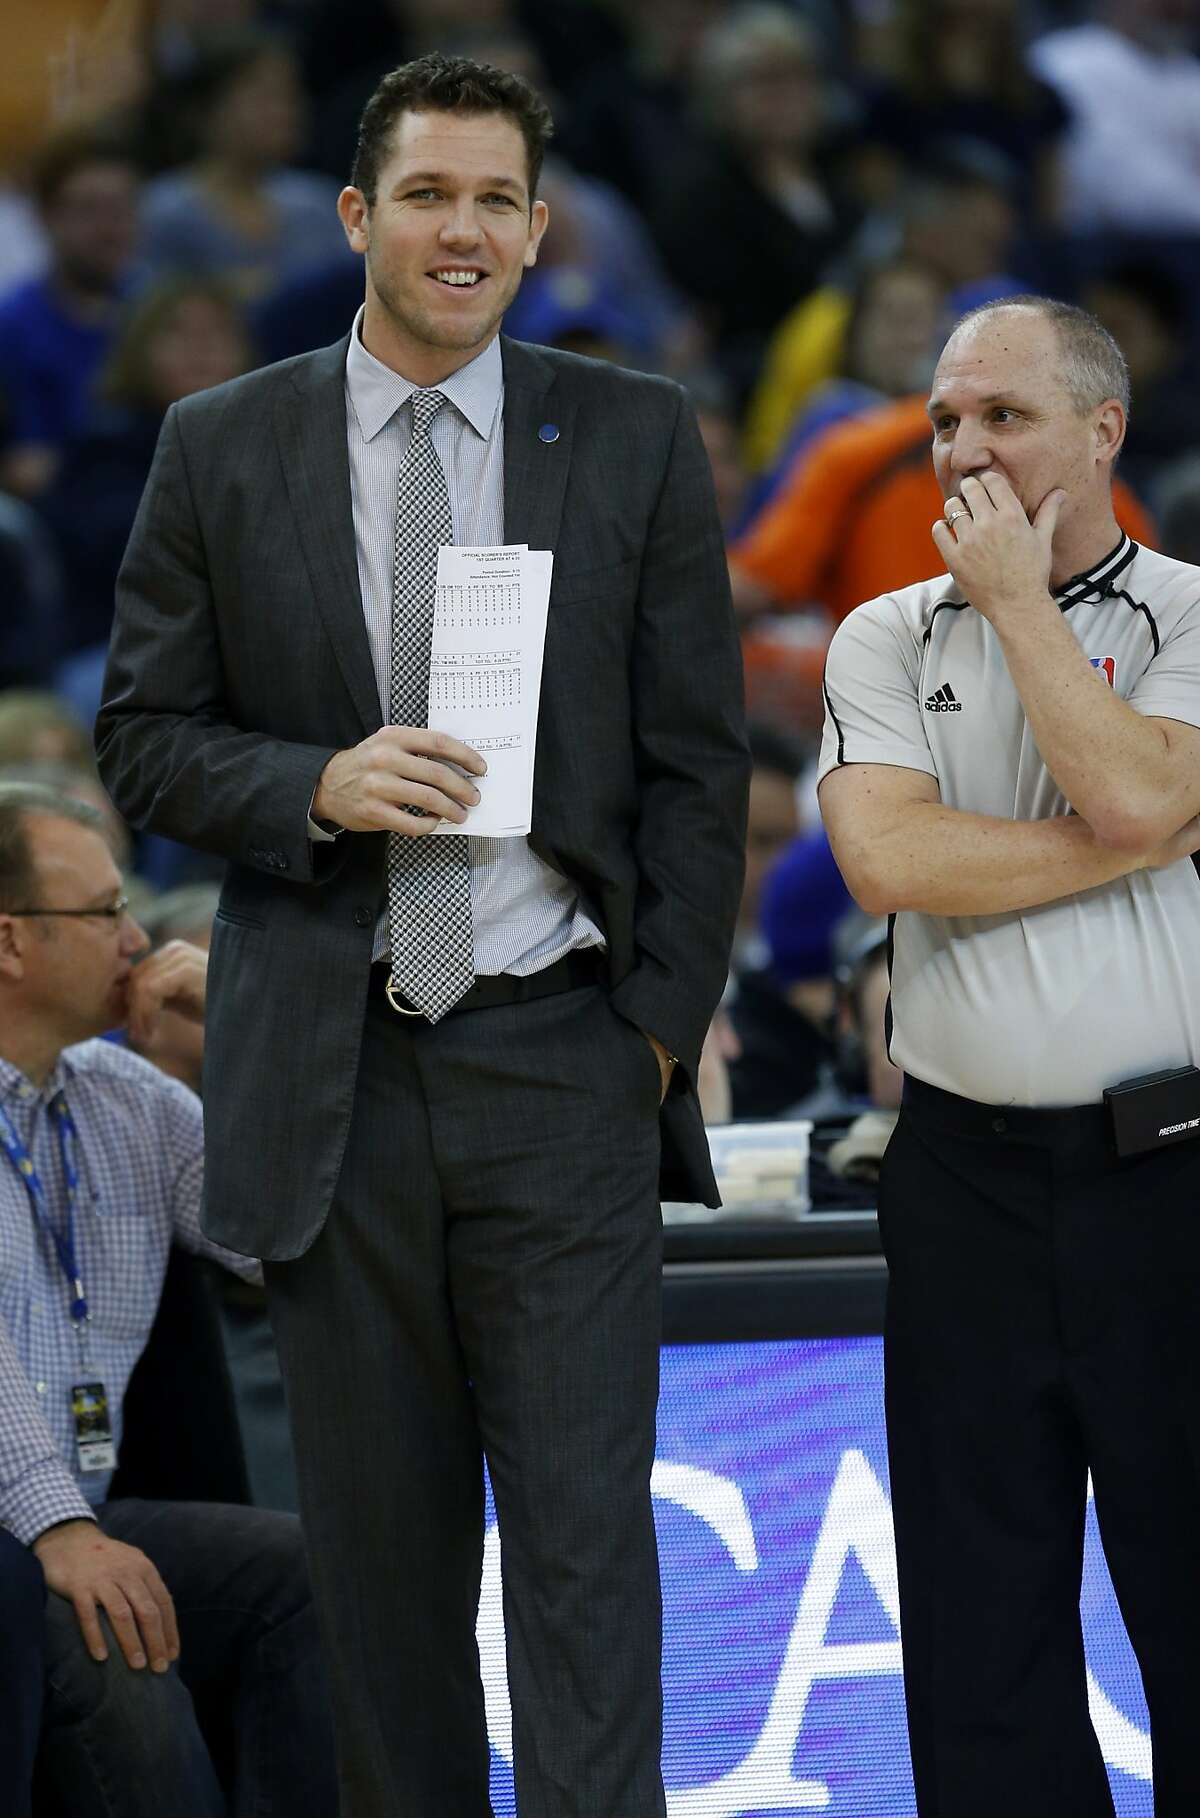 Golden State Warriors' interim coach Luke Walton jokes with an official in 1st quarter against Miami Heat during NBA game at Oracle Arena in Oakland, Calif., on Monday, January 11, 2016.